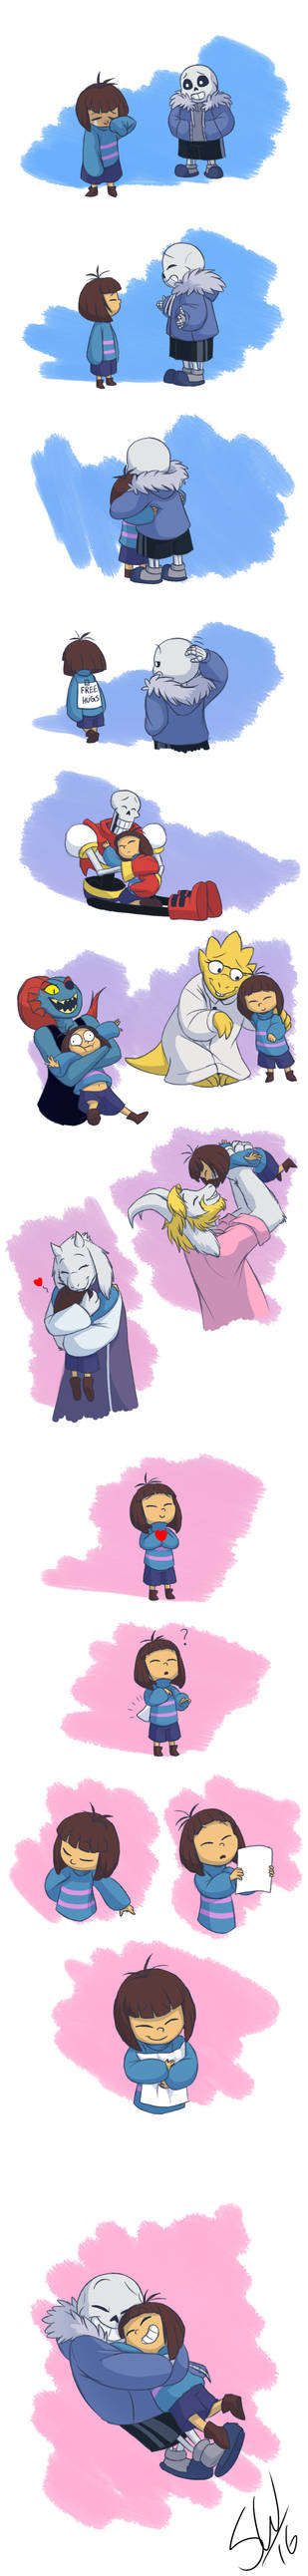 Undertale - The Legendary Hug Master